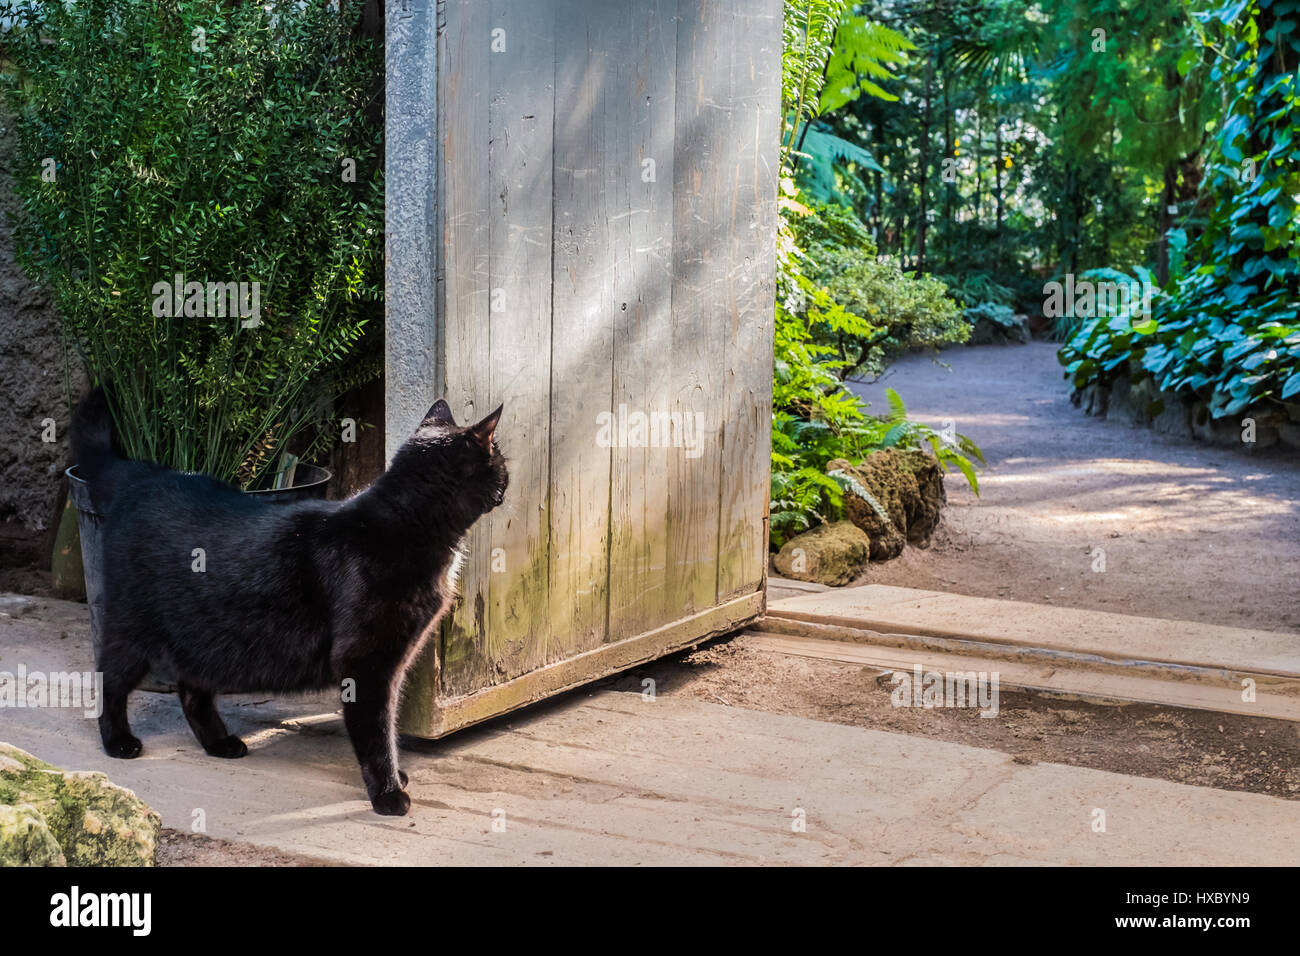 Curious black cat infront of vintage garden doors with bright green  tropical plants on background - Curious Black Cat Infront Of Vintage Garden Doors With Bright Green